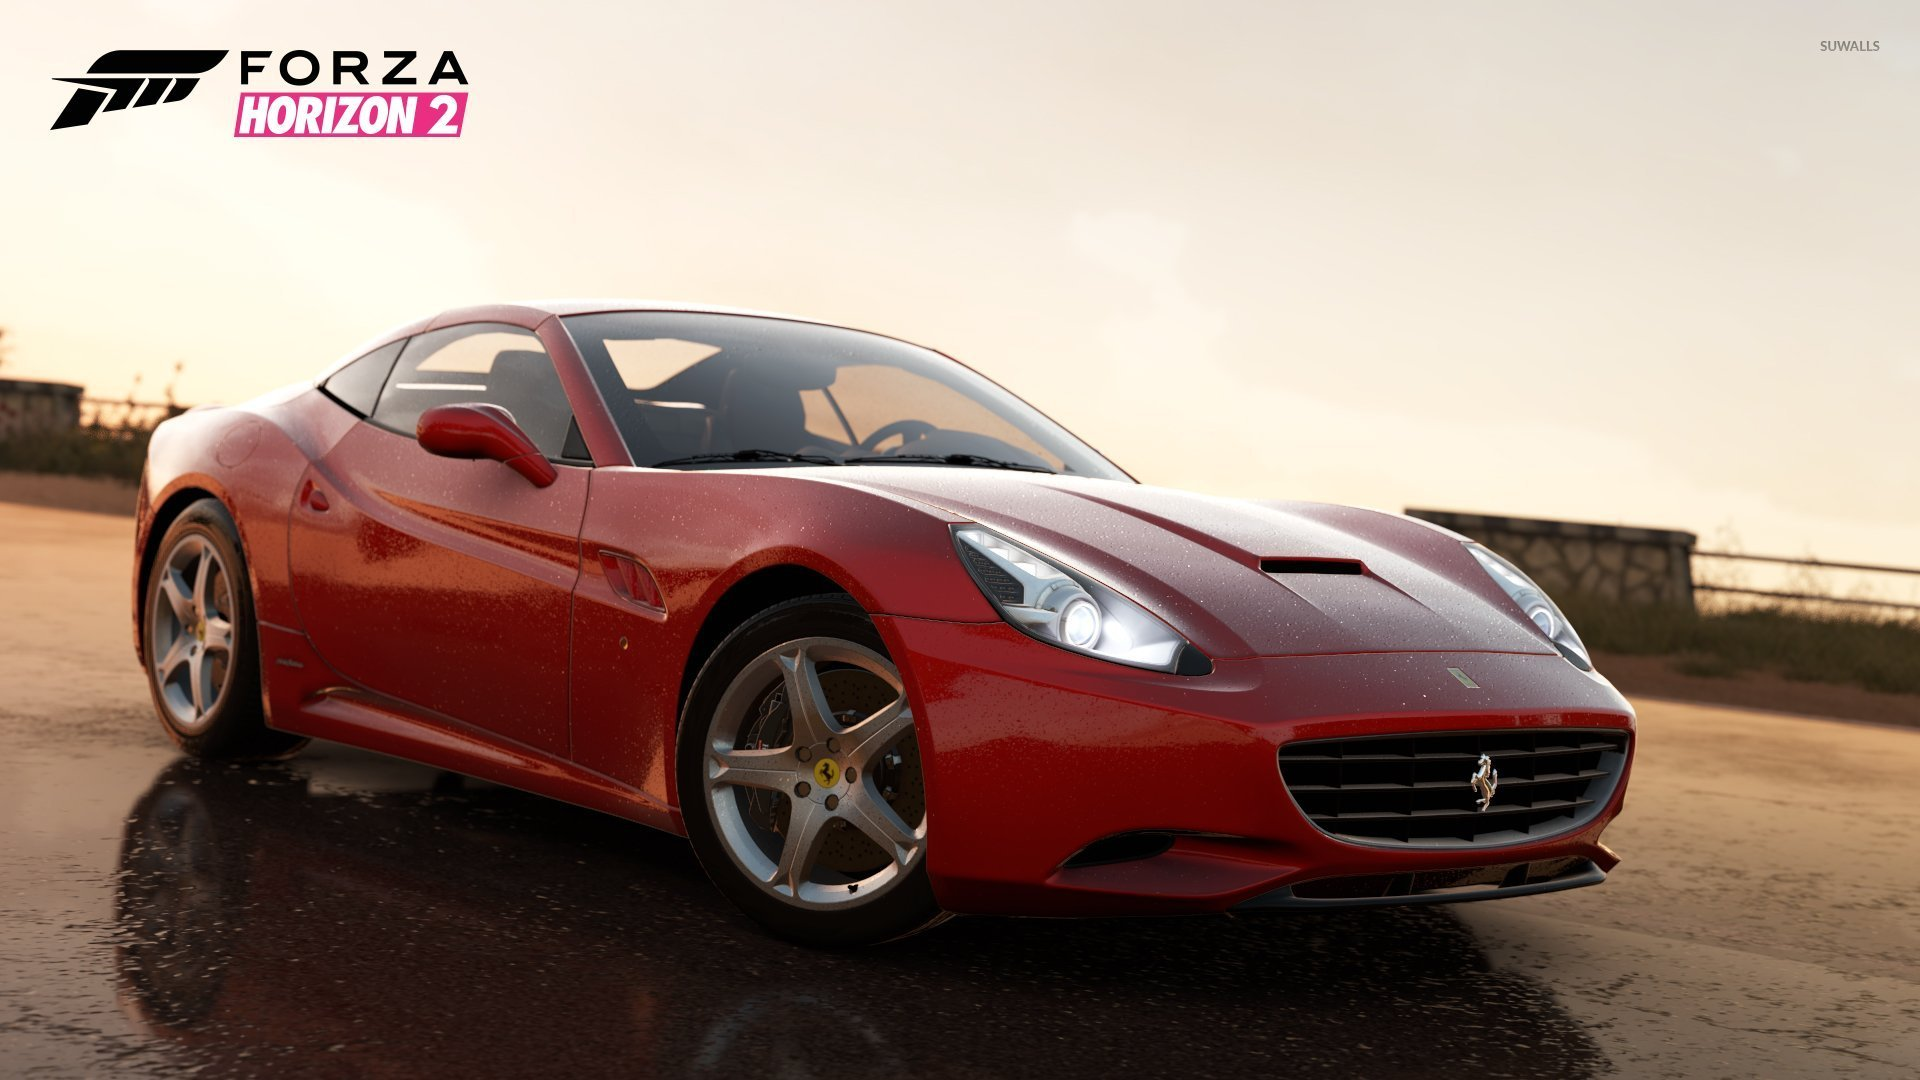 ferrari california forza horizon 2 wallpaper game. Black Bedroom Furniture Sets. Home Design Ideas